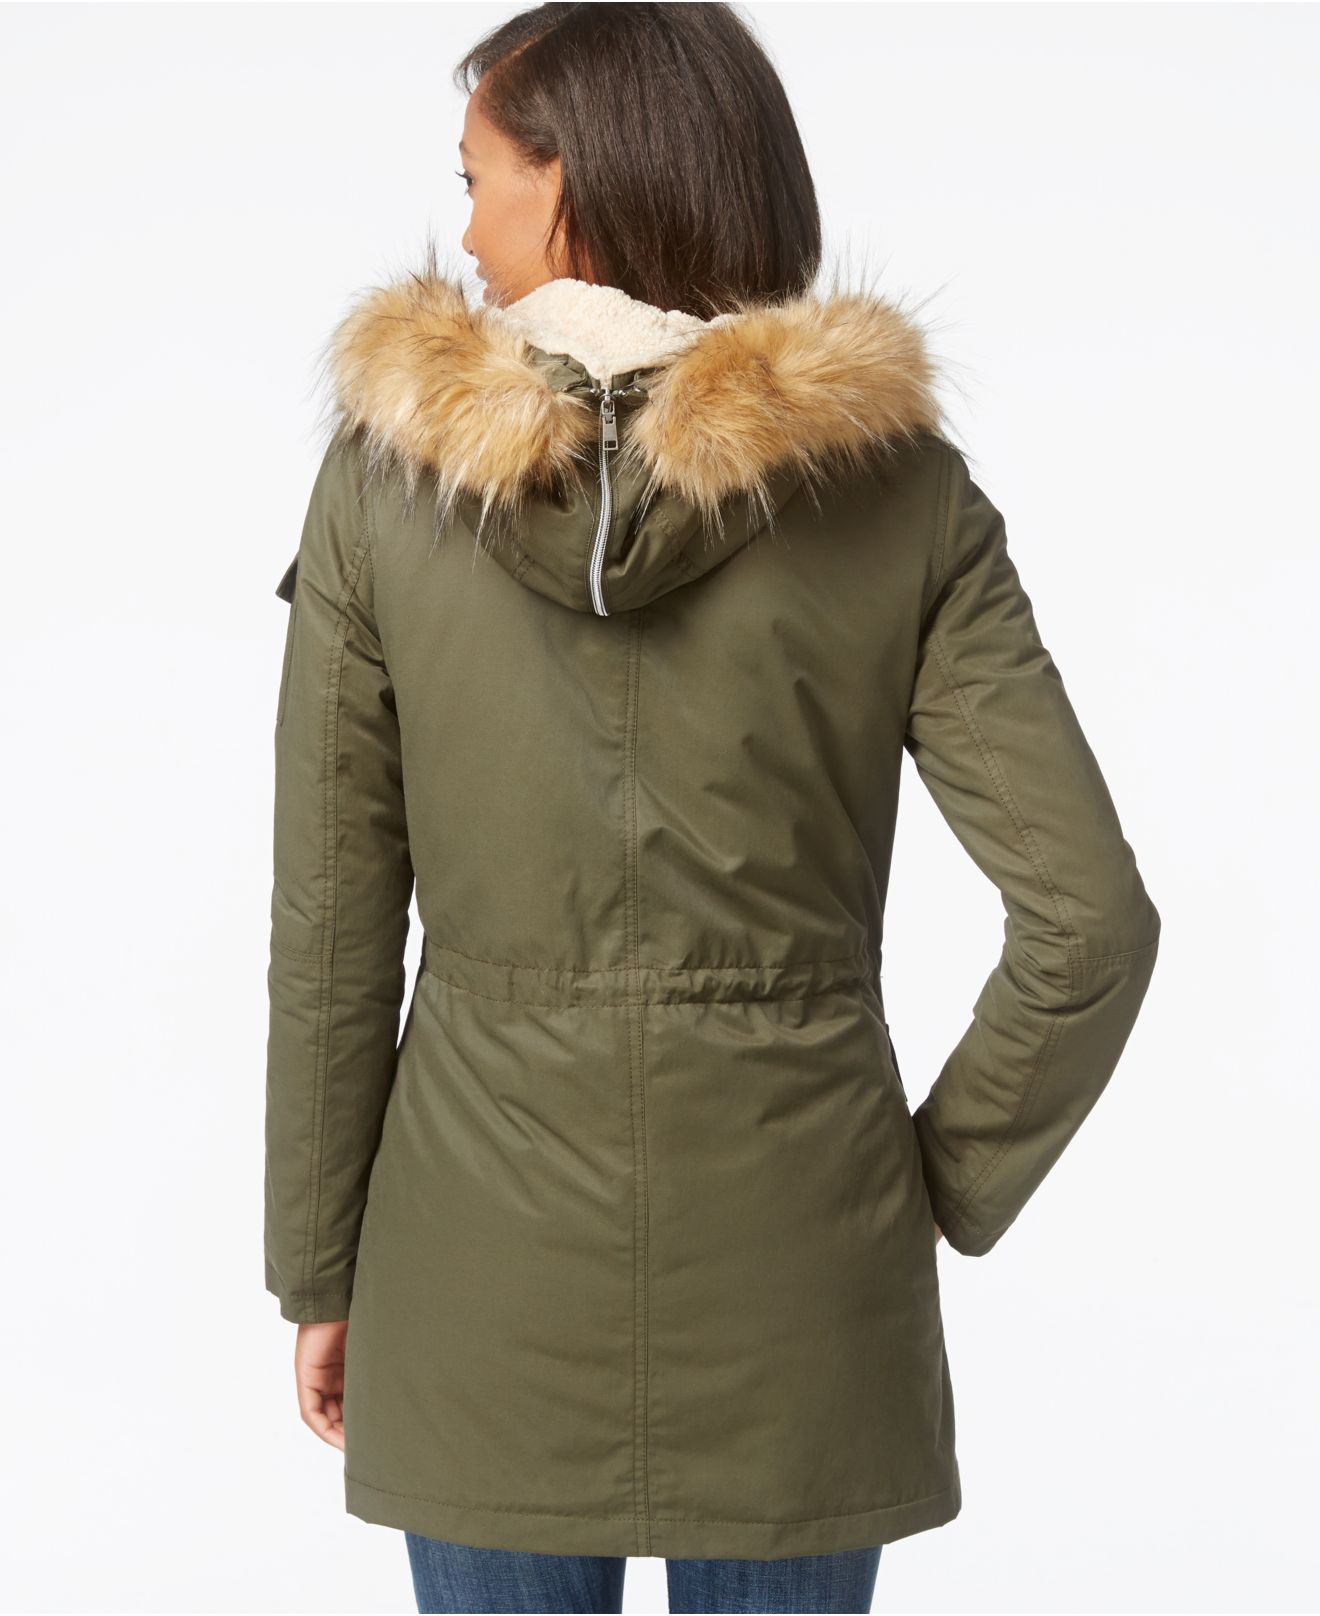 Tommy Hilfiger Faux-sherpa-lined Anorak Jacket in Olive ...